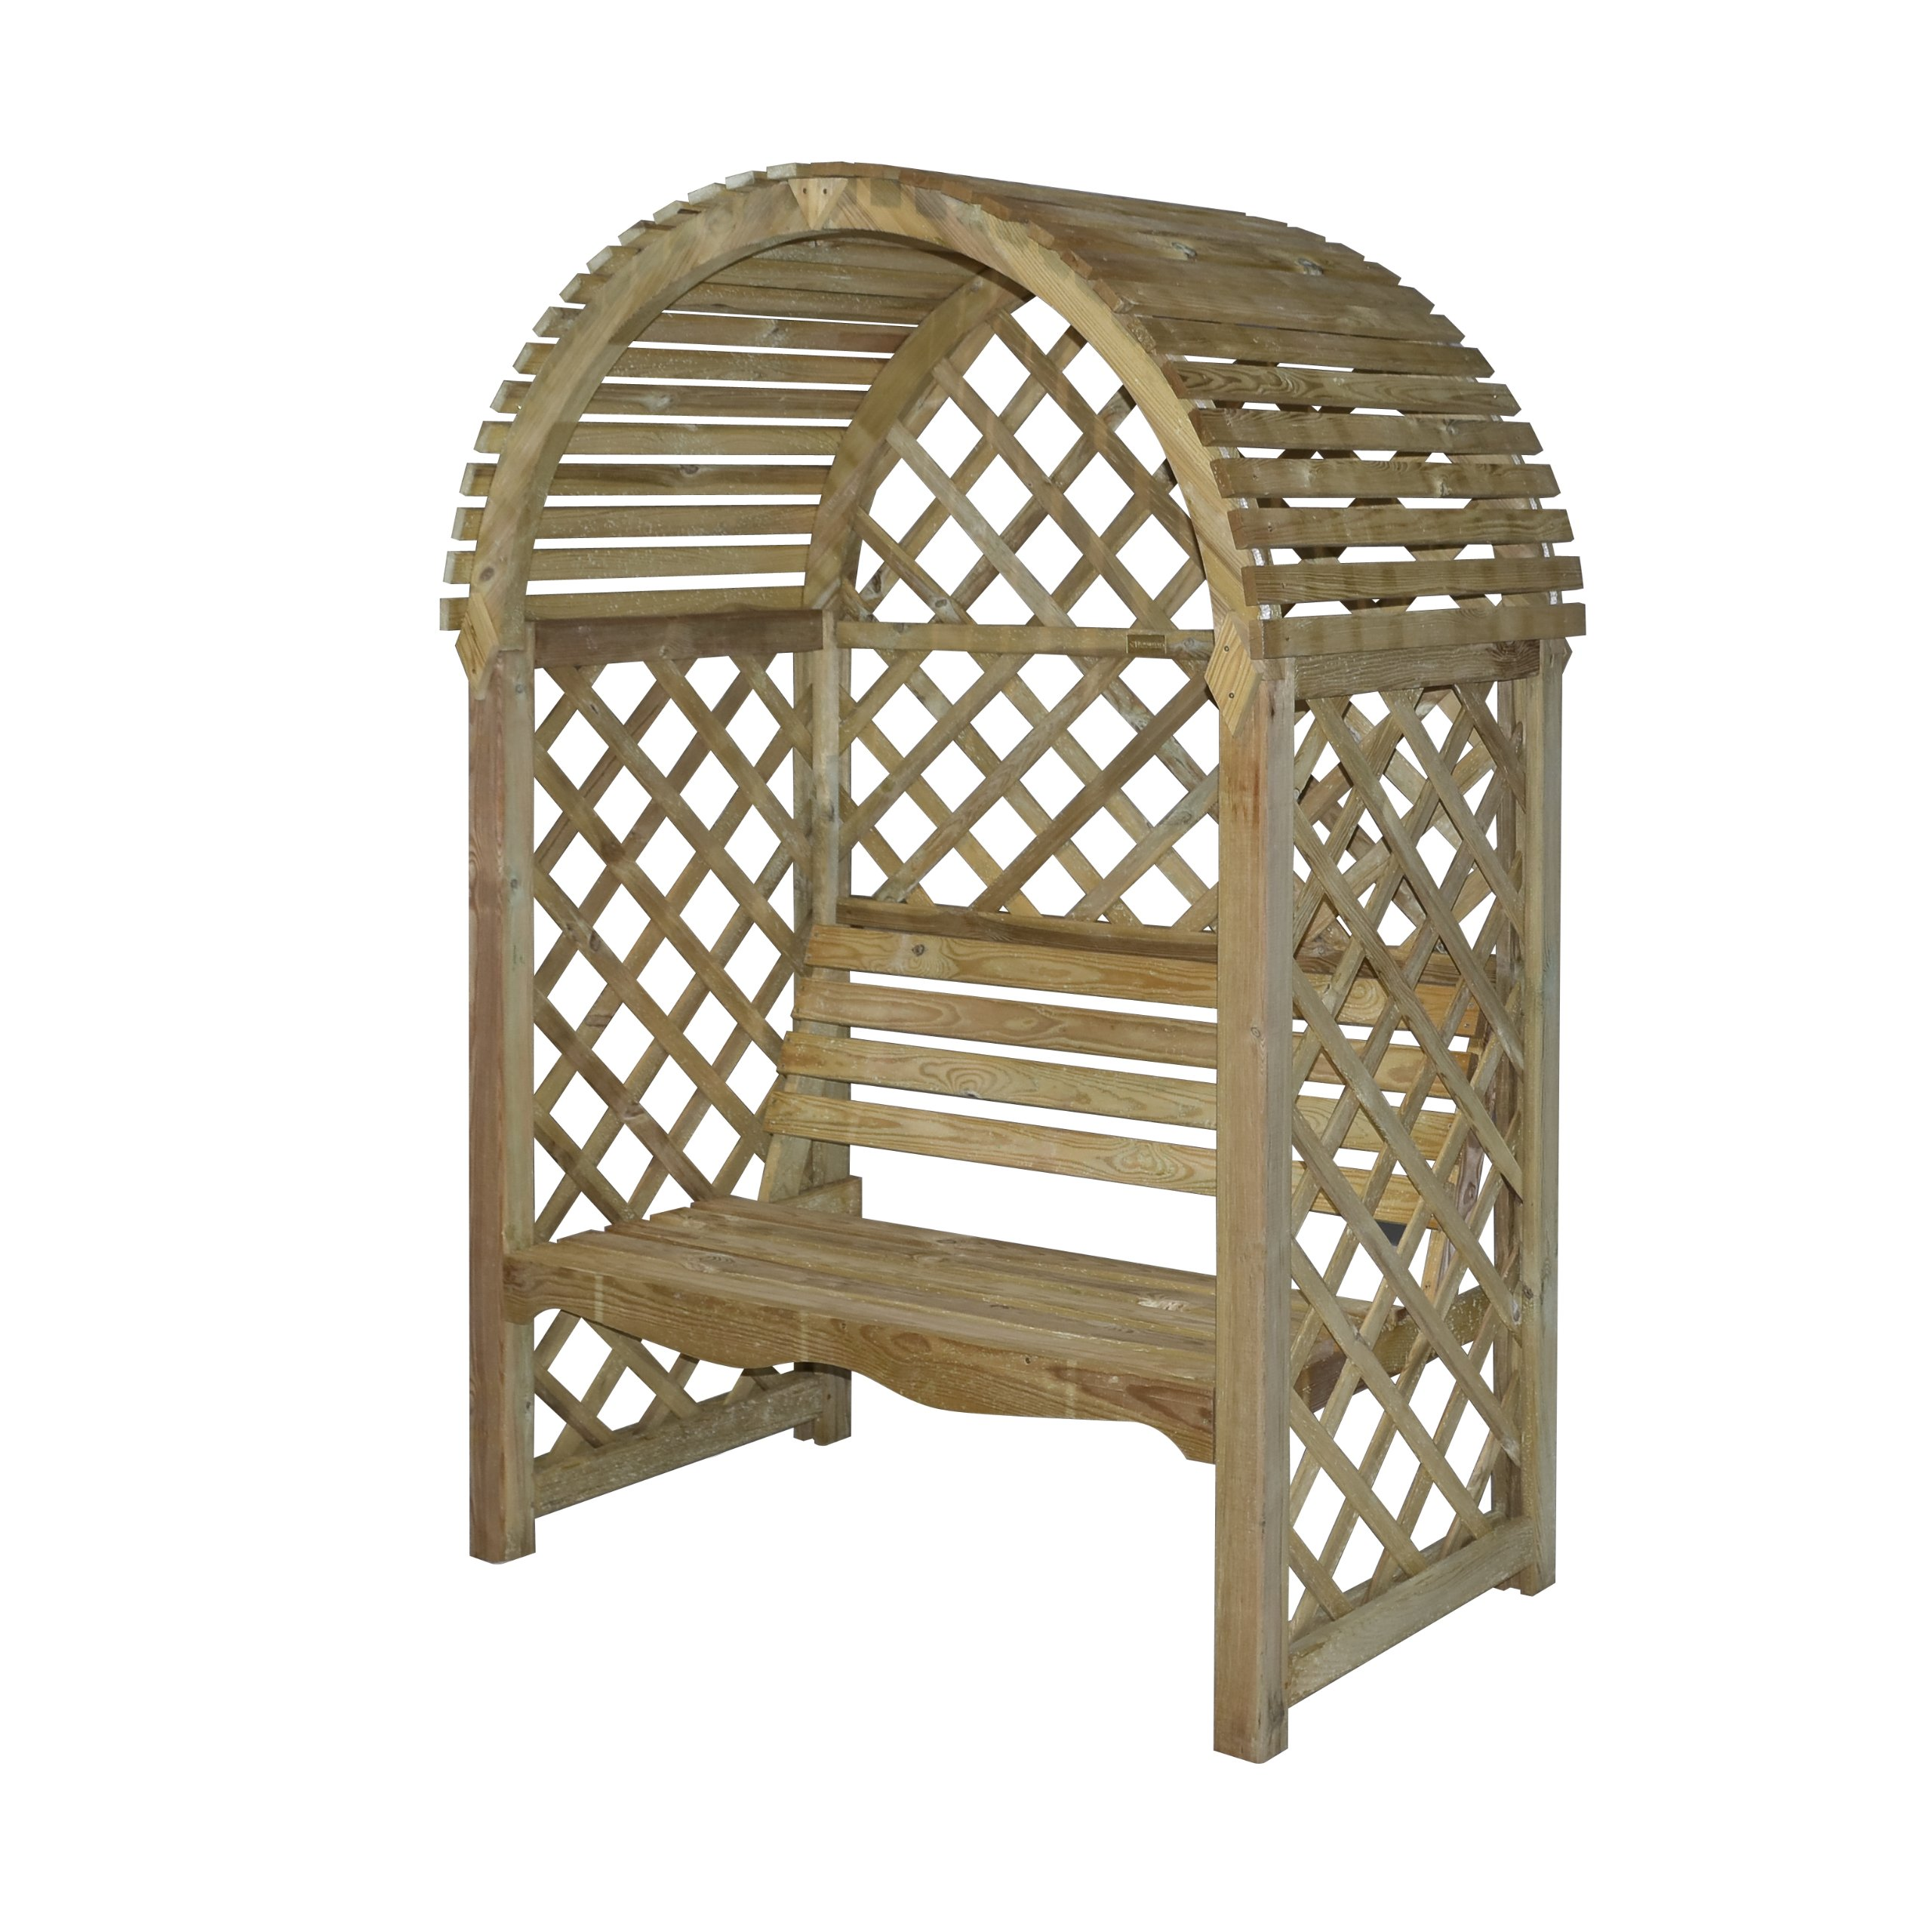 Bosmere PERVIC Rowlinson Victoria Arbor with Seat and Lattice Back/Sides, Natural Finish